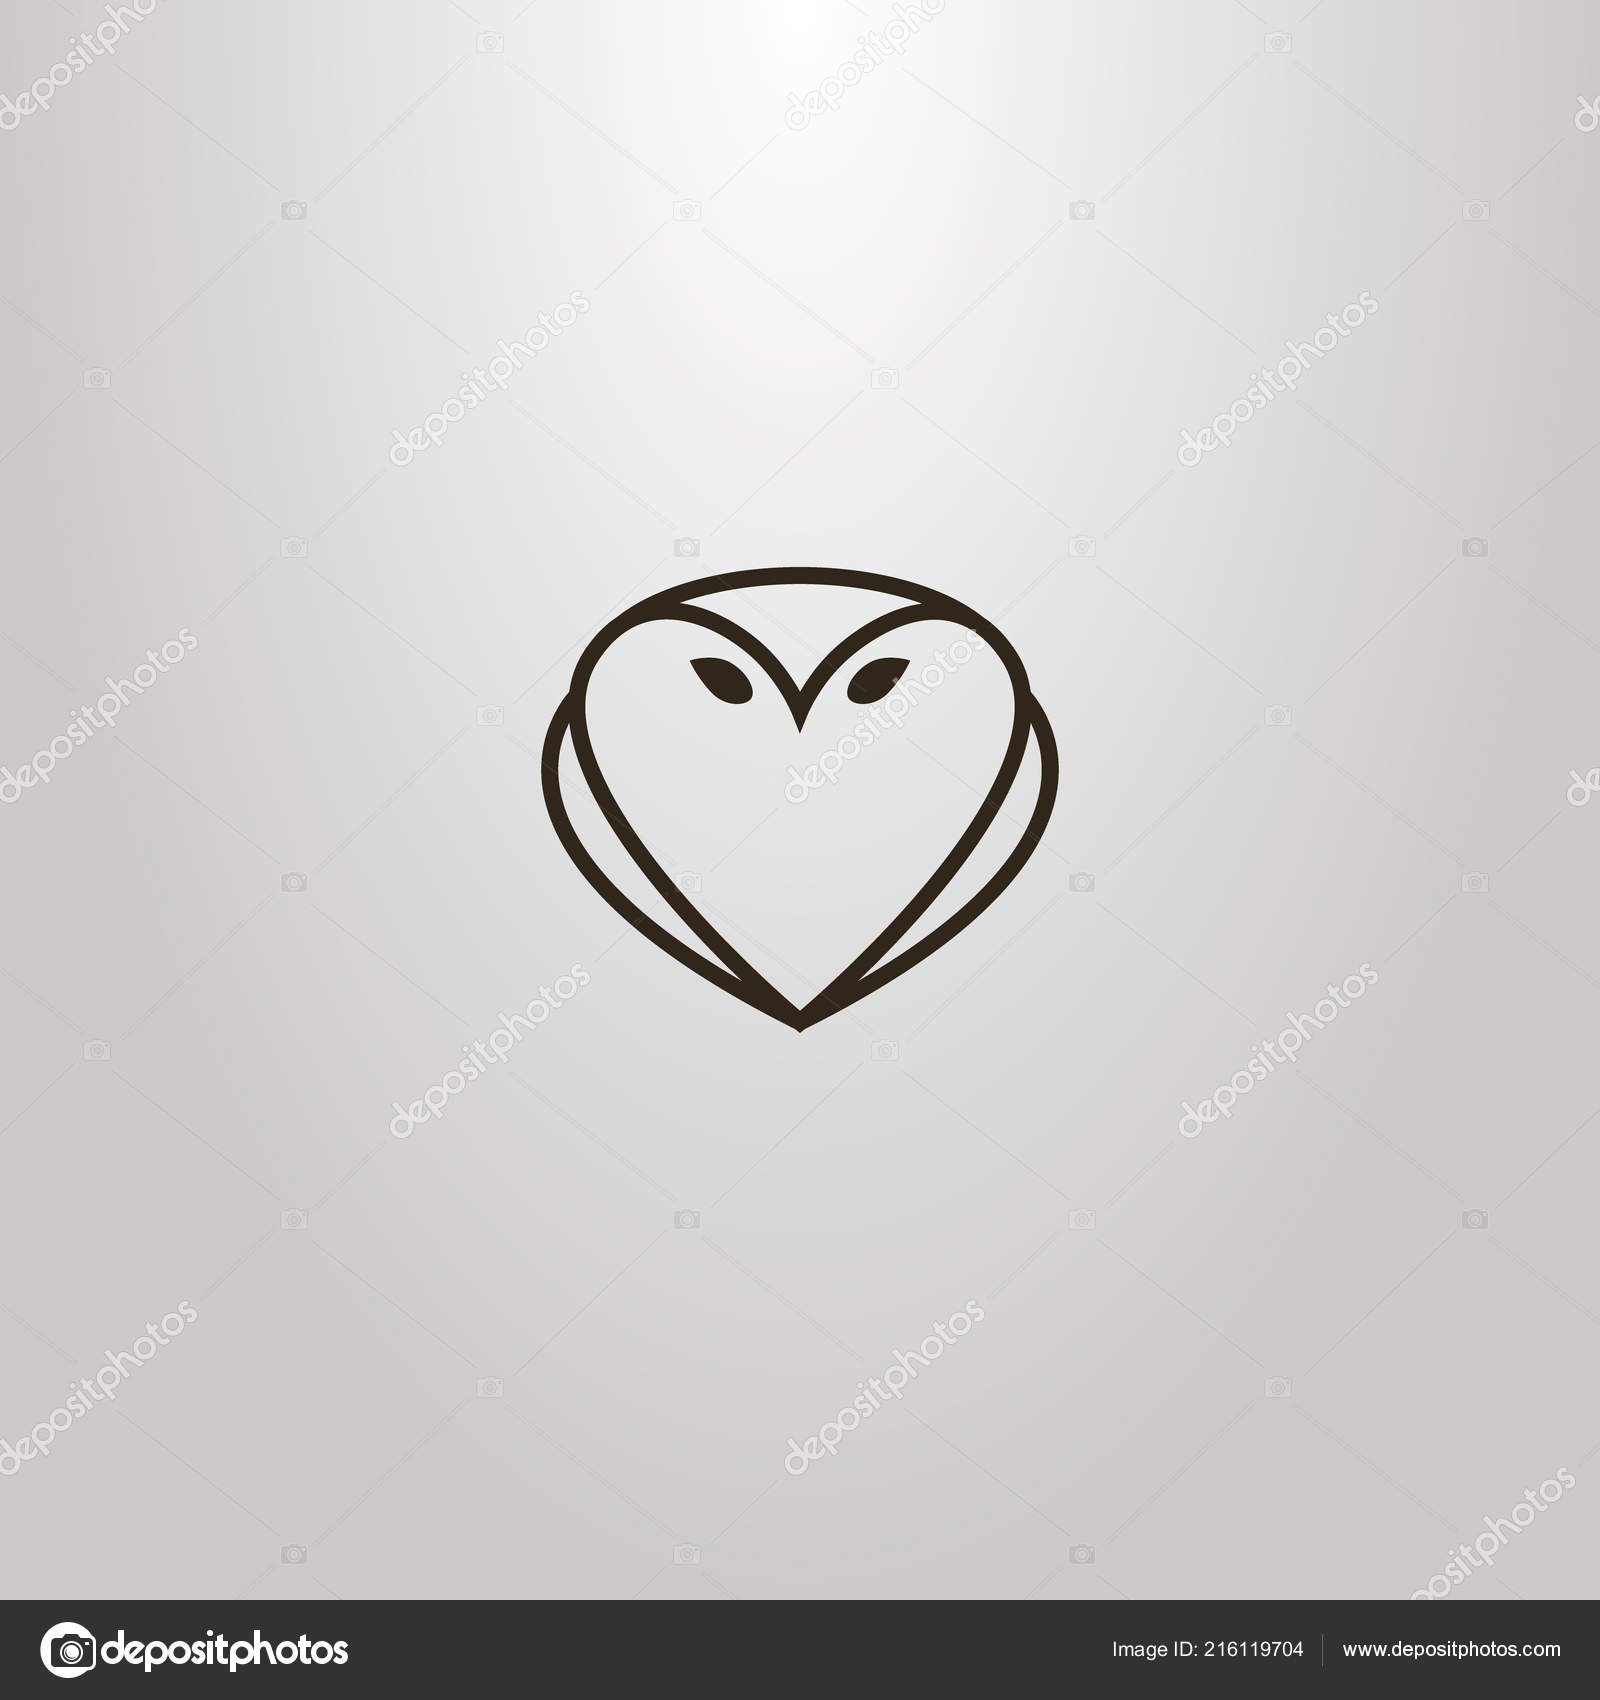 Simple Hearts Owl Outlines Wiring Diagrams Hqewnet Circuitdiagram Simulatethetrafficlightcircuit10820html Black White Vector Line Art Outline Sign Shape Stock Rh Depositphotos Com